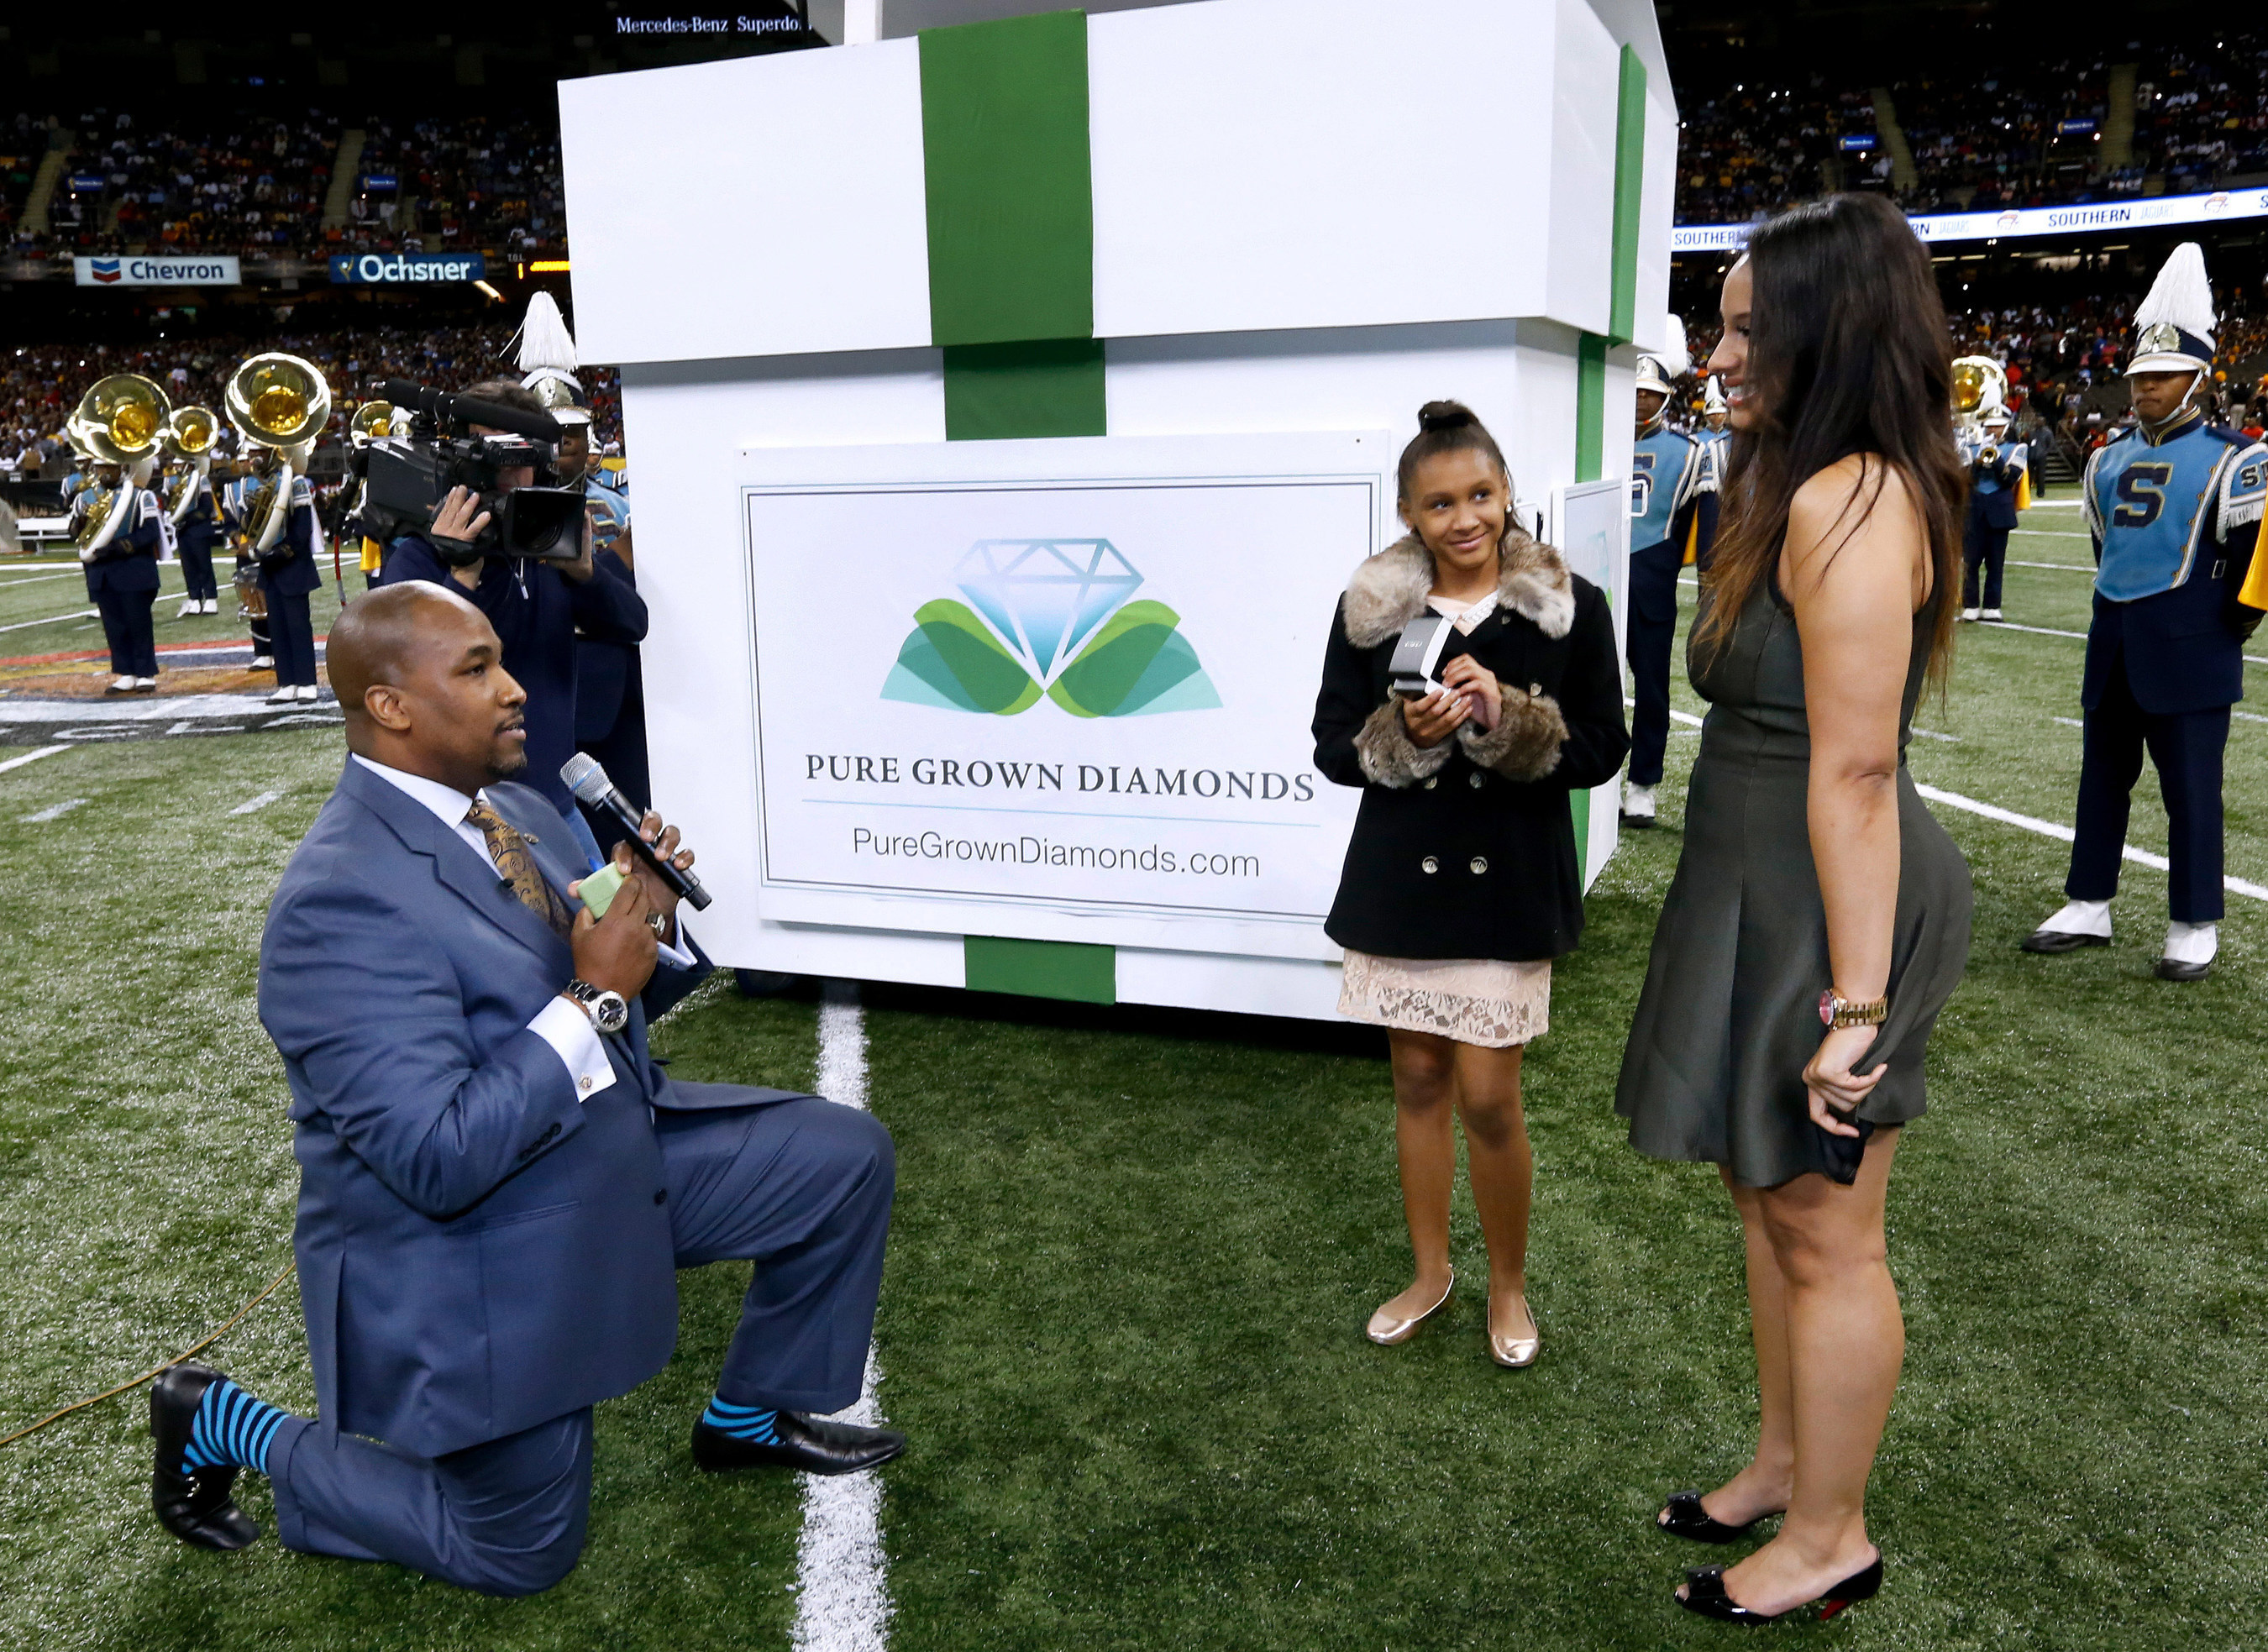 As 12-year-old daughter Ajaya watches mother Brittany Ramsey accept Calvin Mills, Jr.'s proposal with first-of-a-kind lab-created Pure Grown Diamond in New Orleans' Superdome, this weekend. (Jonathan Bachman/AP Images for Pure Grown Diamonds)